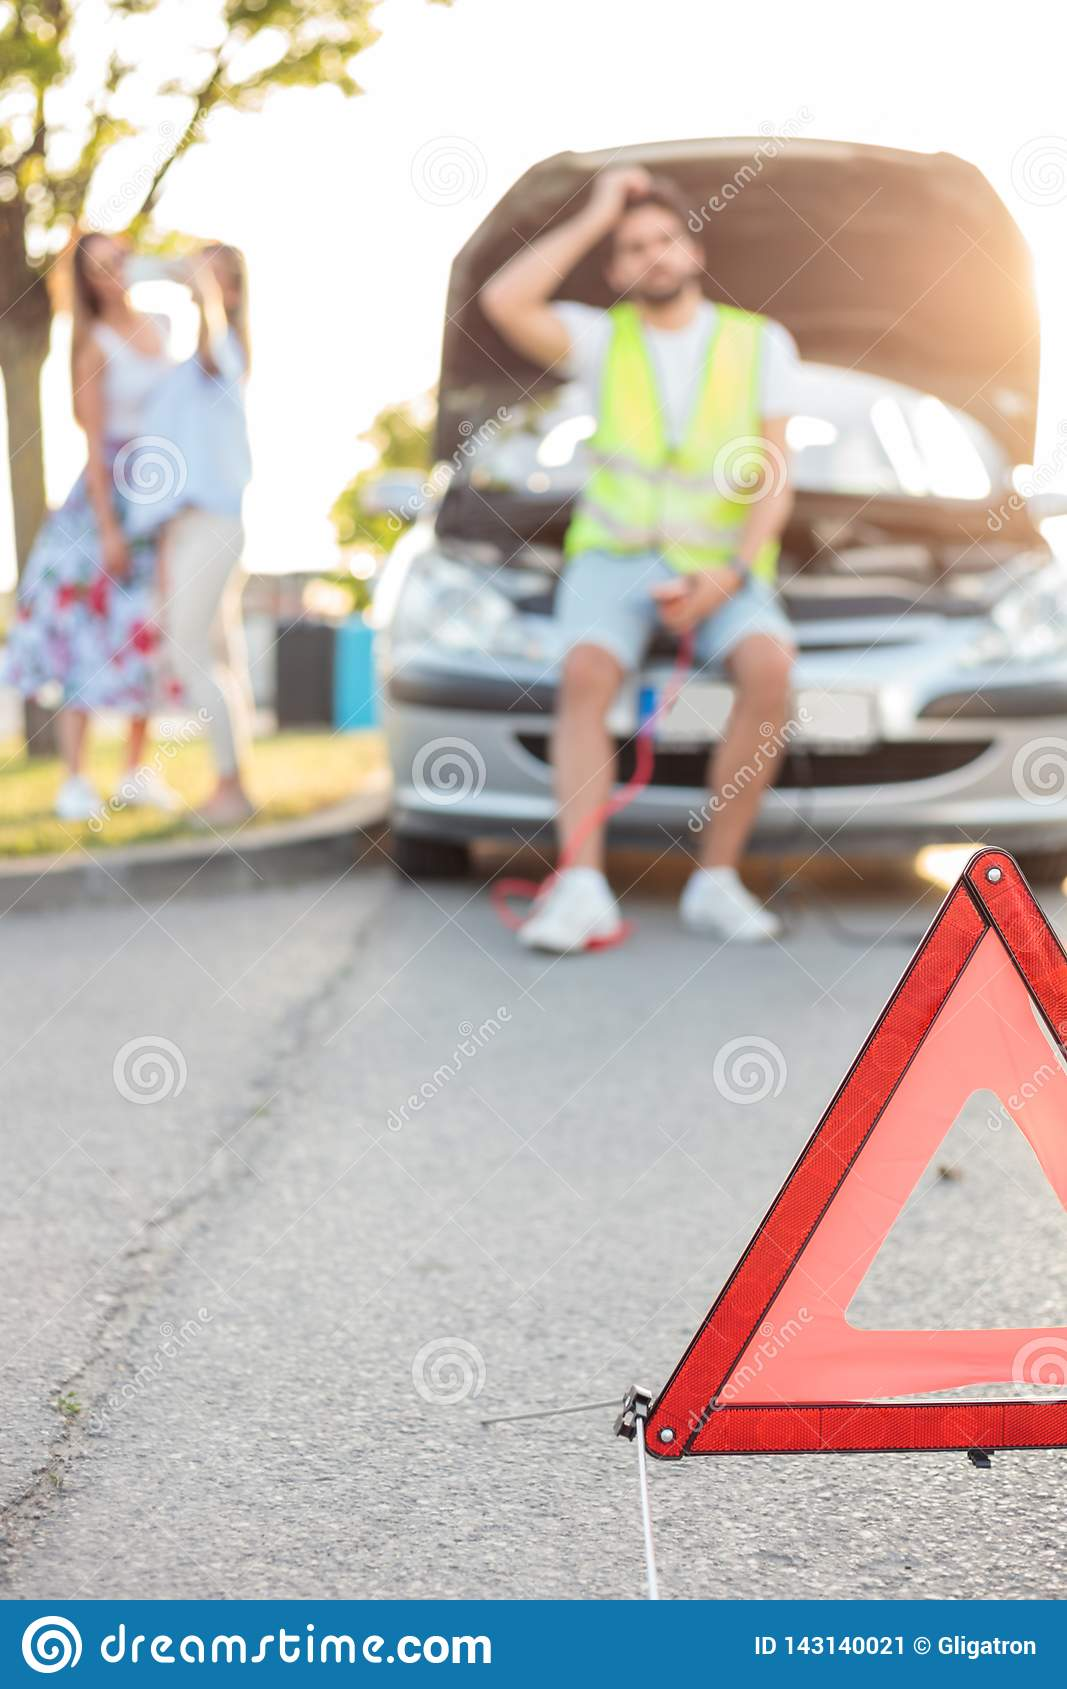 Young man repairing a broken car by the side of the road. Selective focus on emergency triangle in foreground